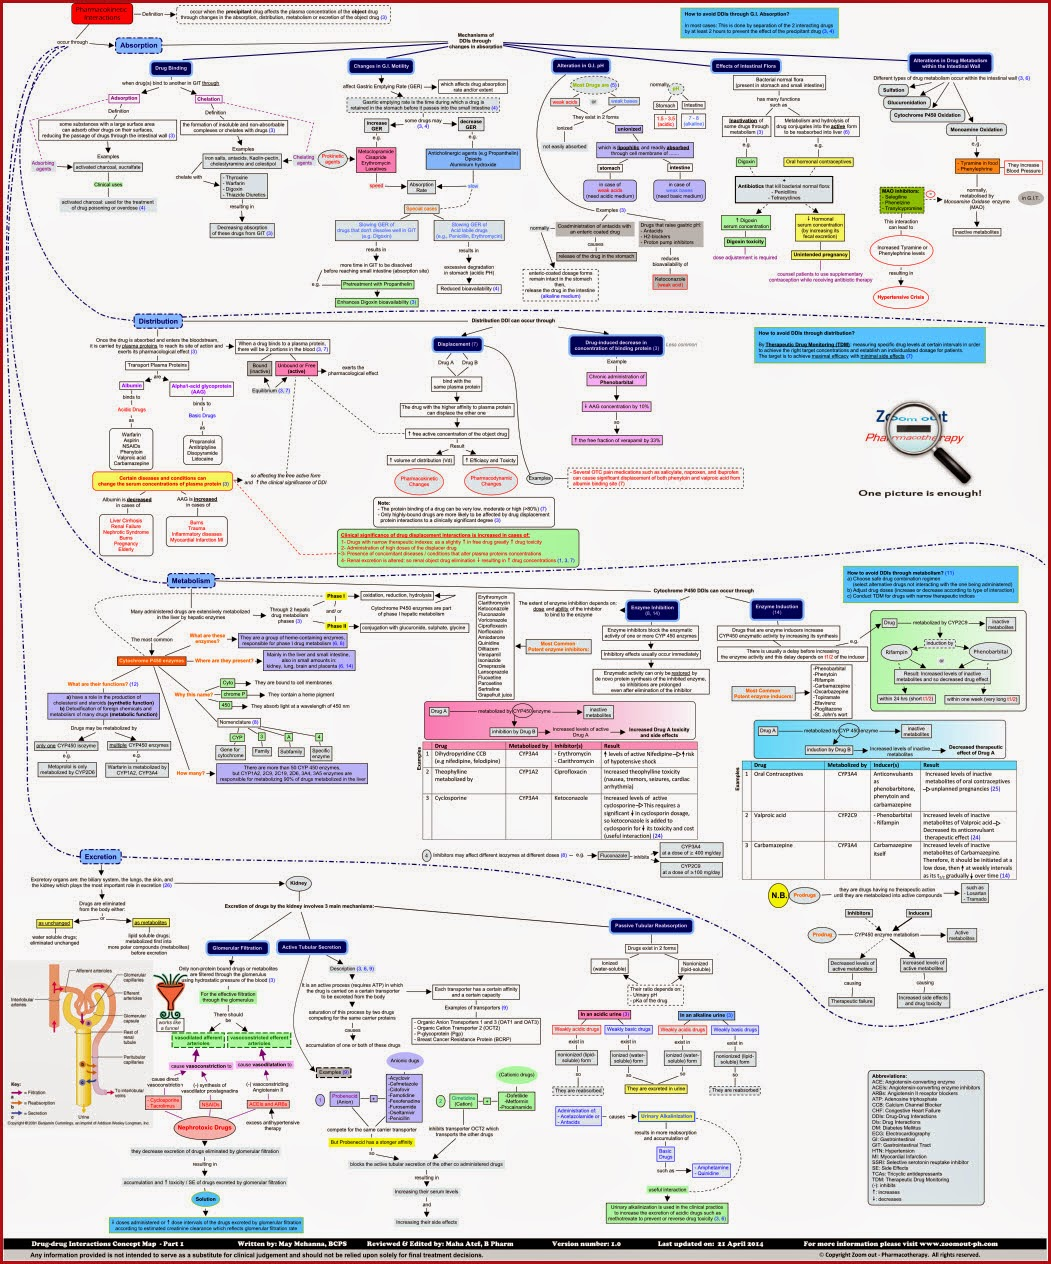 drug_drug_interactions_concept_map_zoom_out_pharmacotherapy